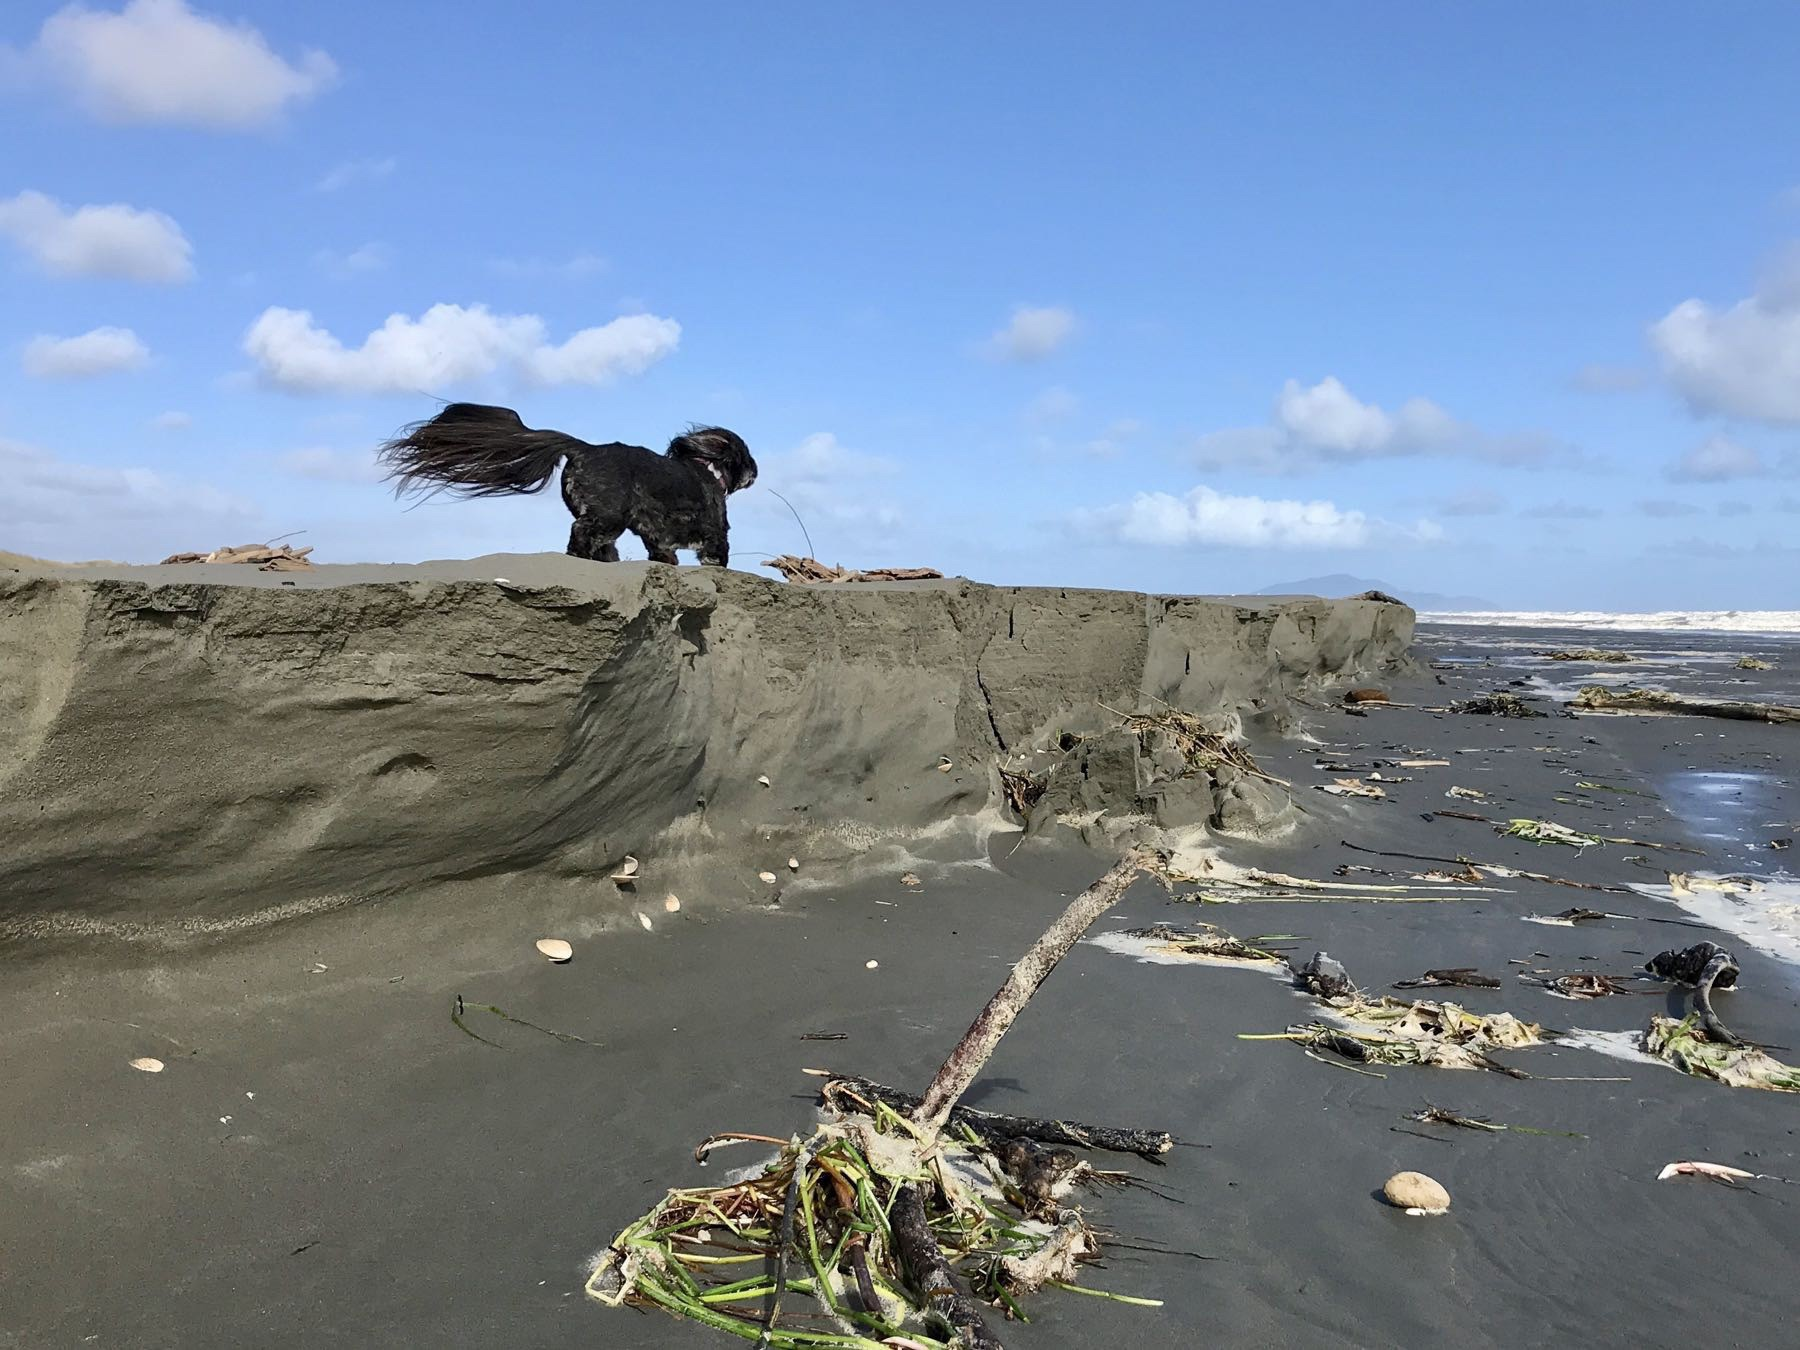 Small black dog on top of sand cliff. Her tail is streaming in the wind.